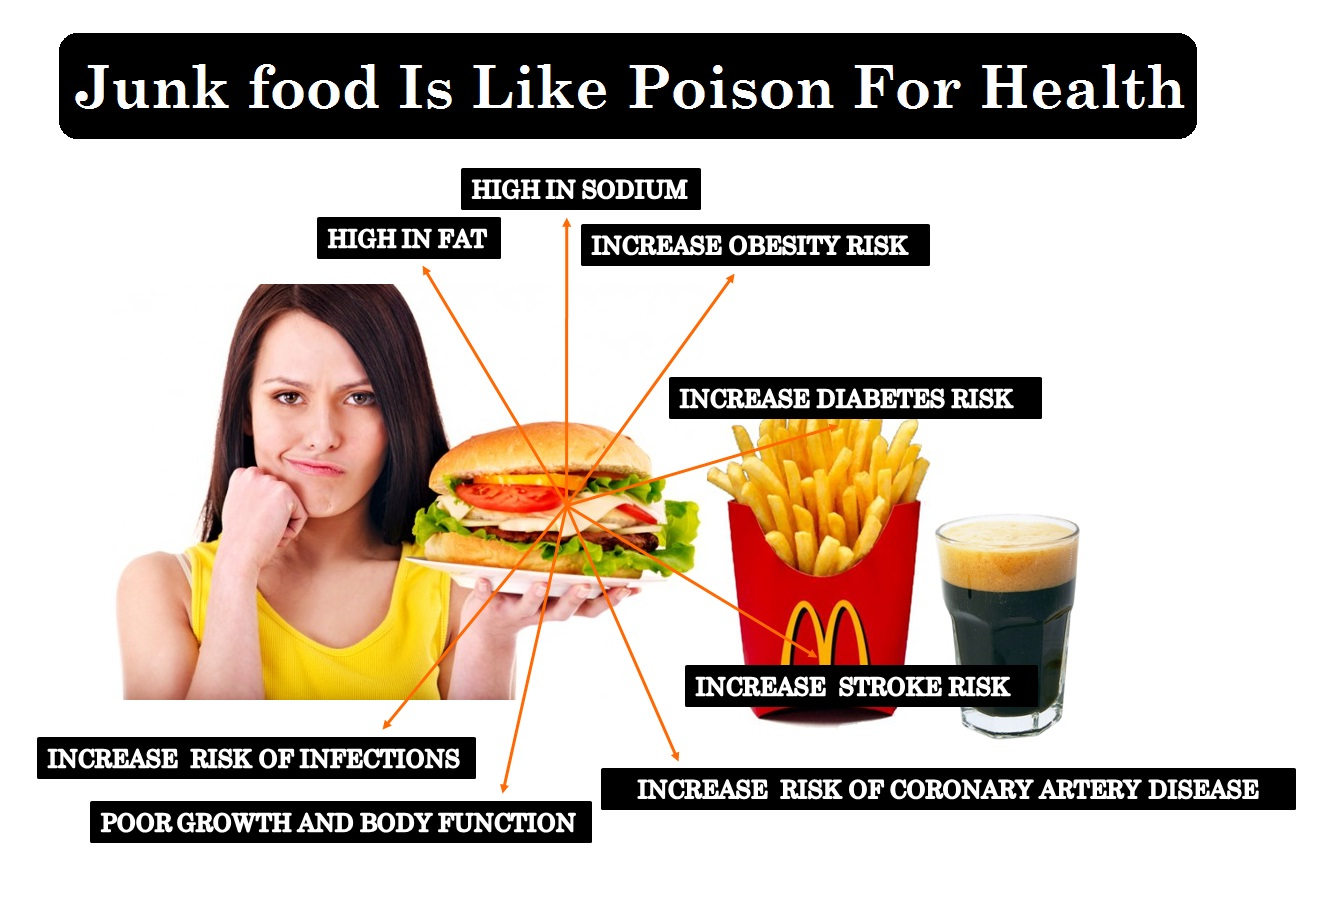 Junk Food Is Like Poison For Health